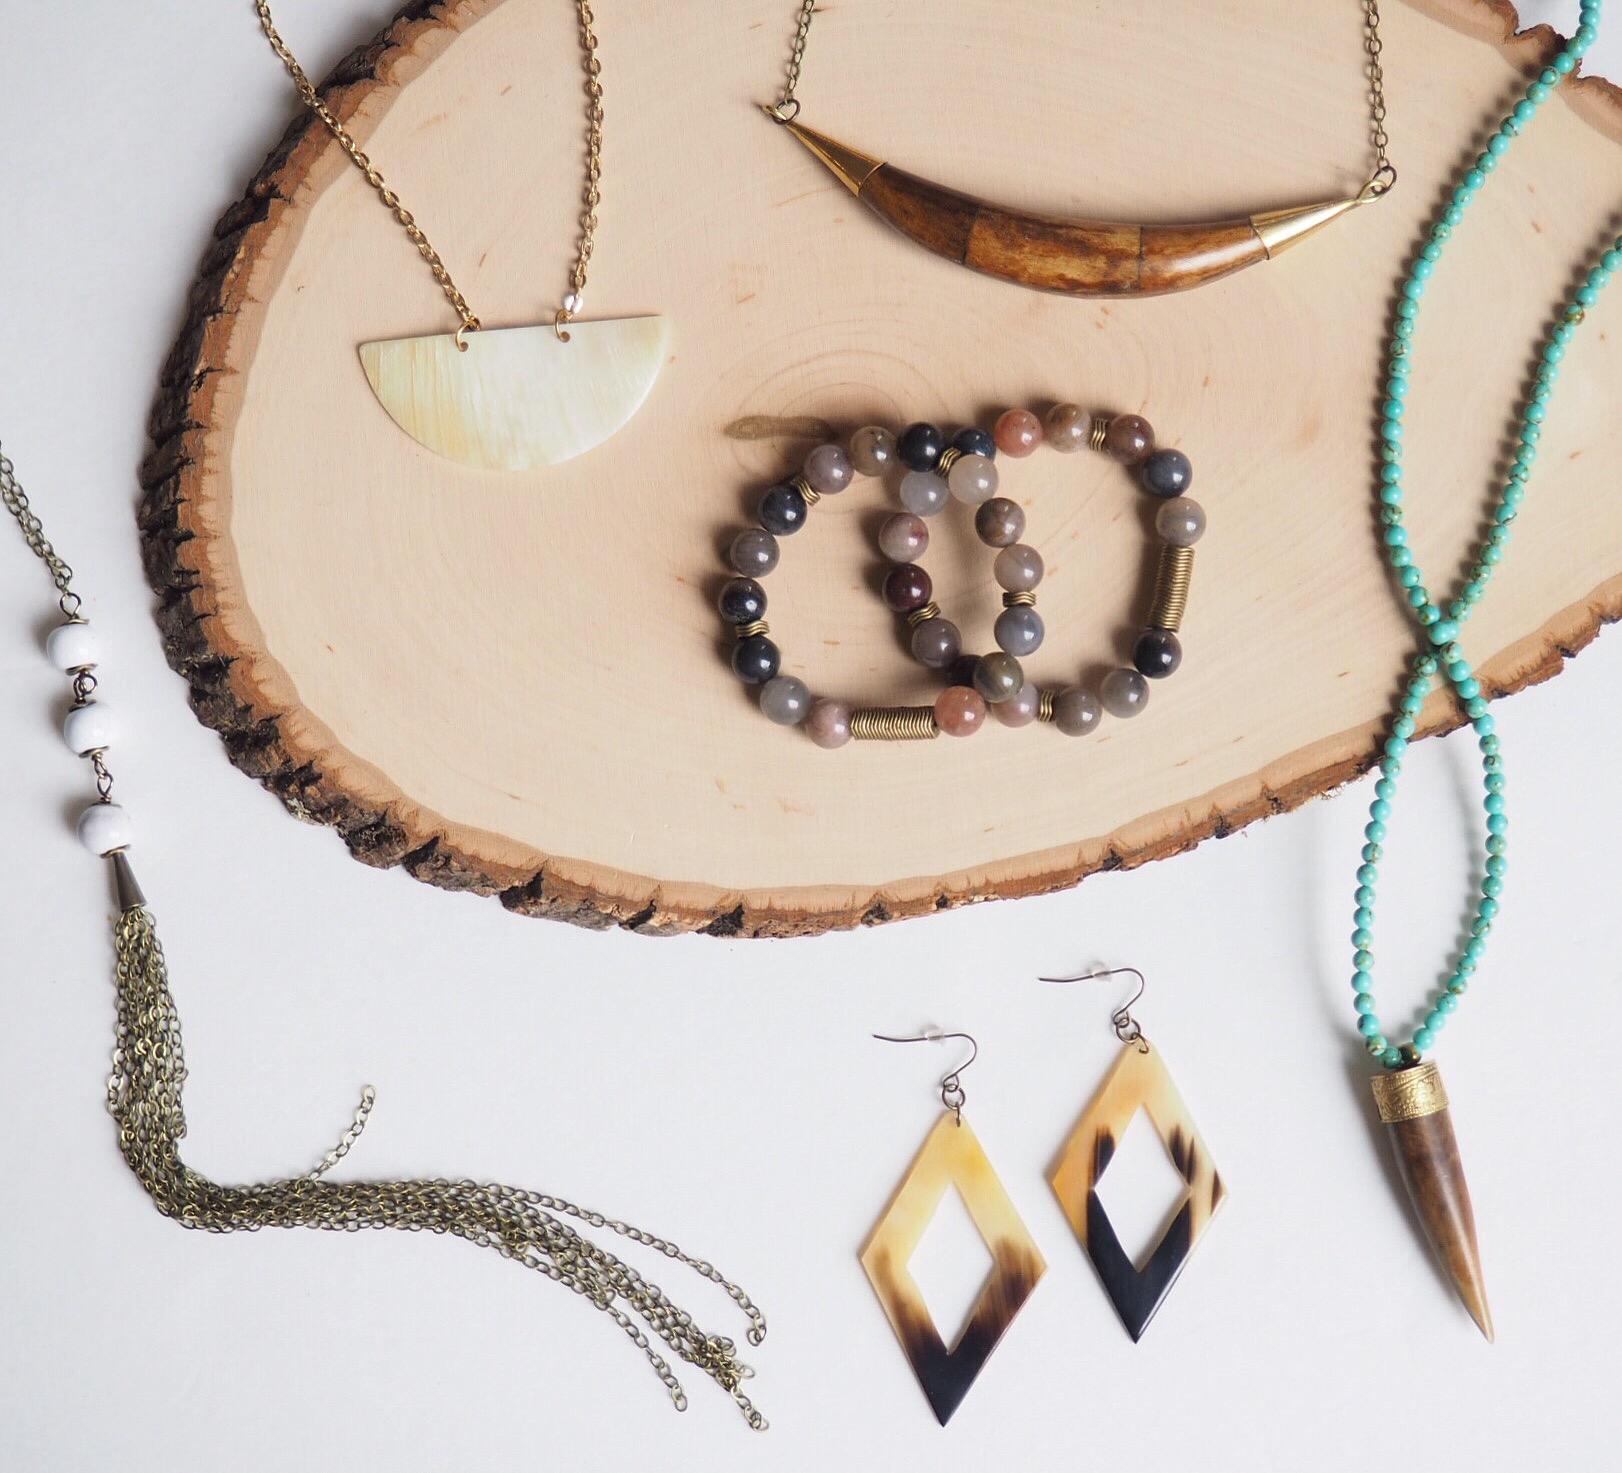 ethical accesories made by artisans